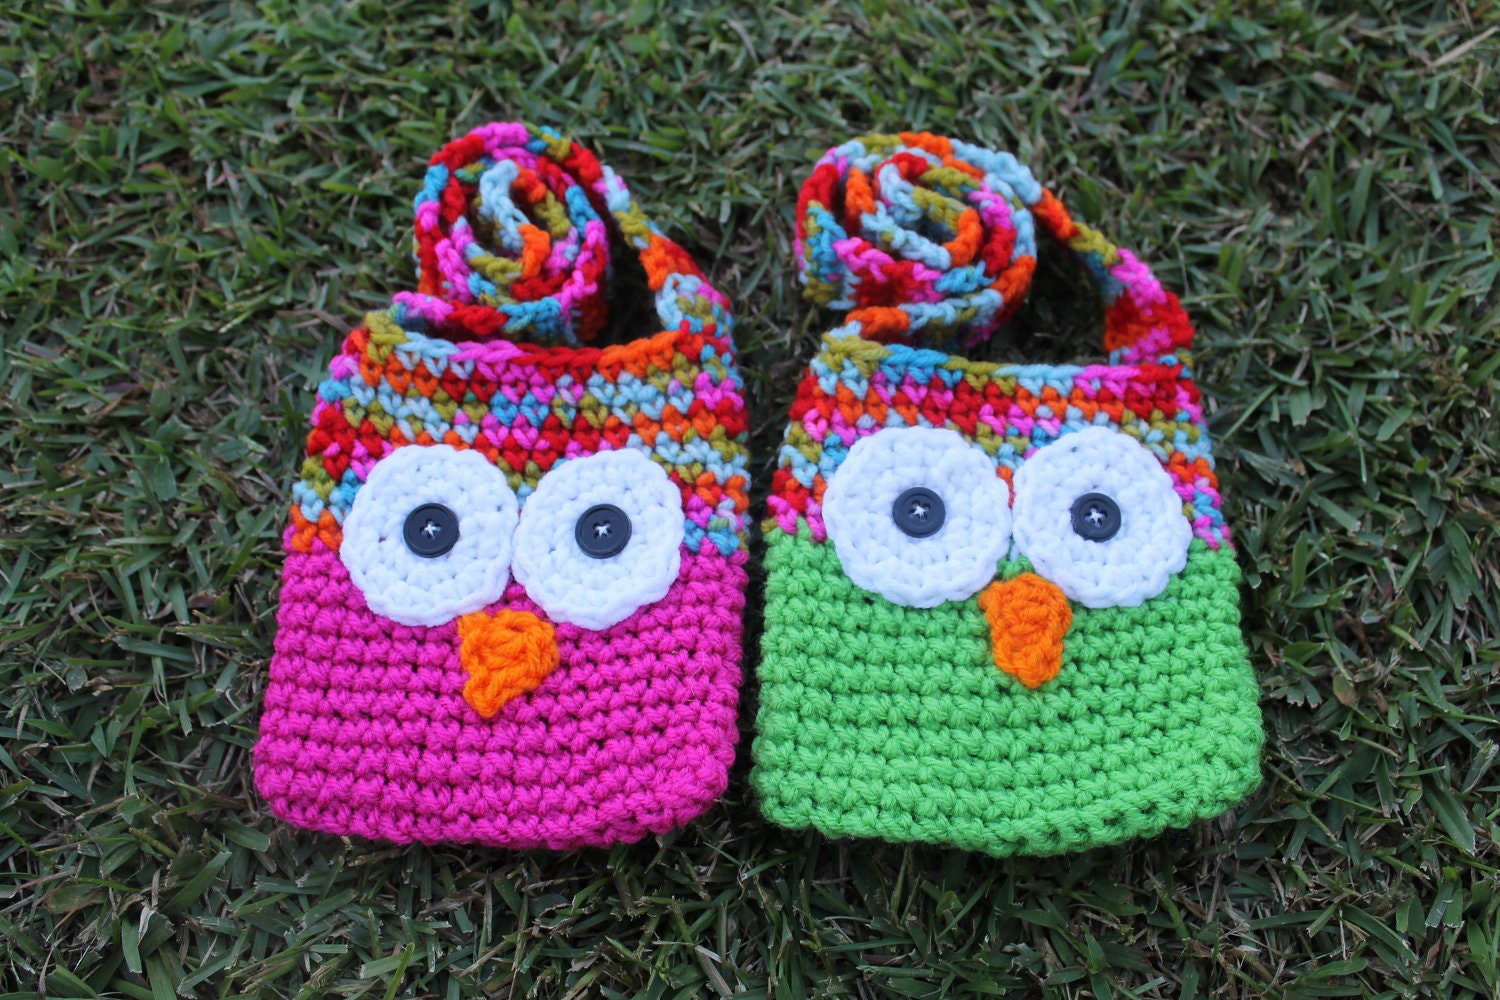 Crochet Bag For Kids : PDF Pattern for Kids Crochet Owl Bags with Strap. by KraftyShack